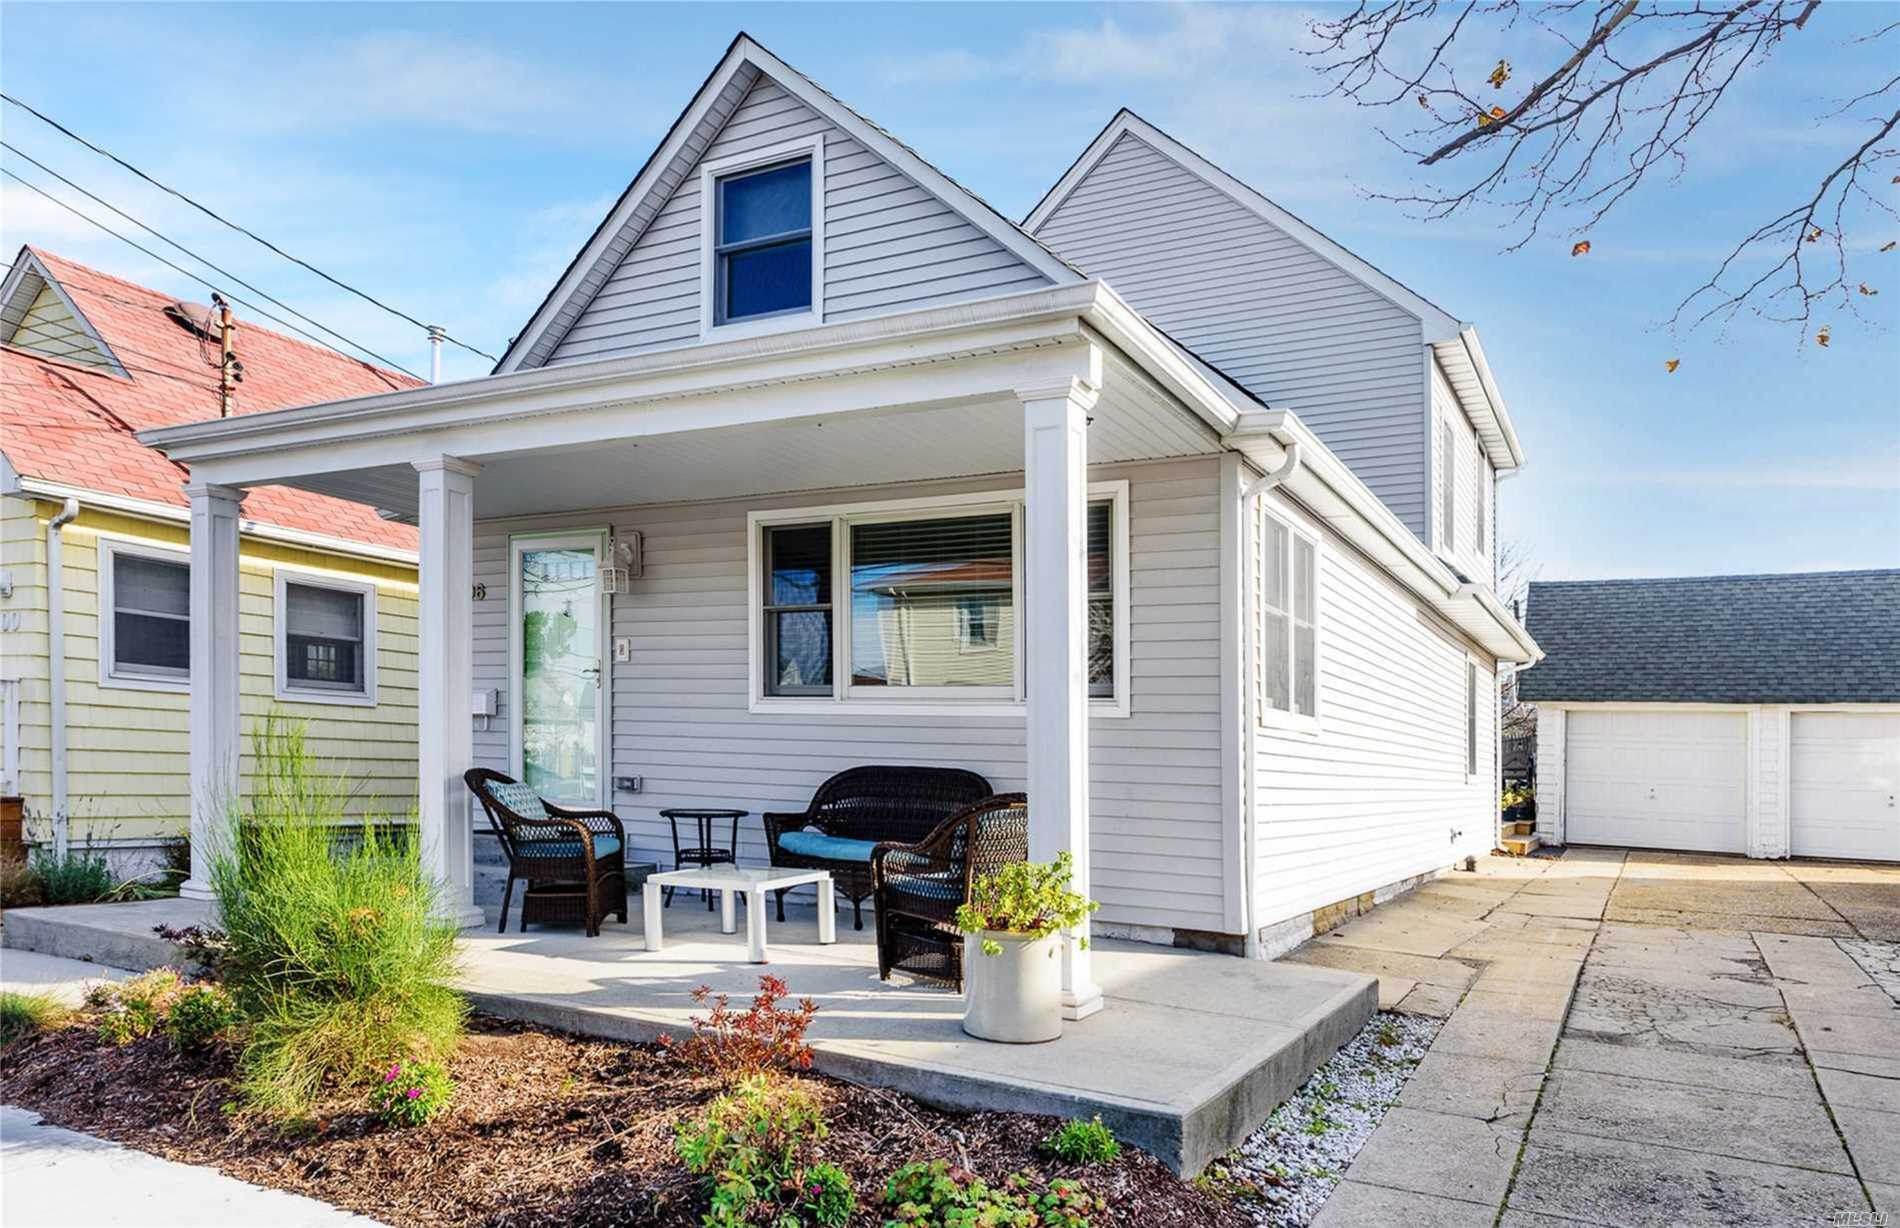 The Perfect Beachside Summer Rental! Newly Renovated Home! Kitchen With Stainless Steel Appliances, New Bathrooms, New Flooring, Open Concept, Spacious Master Suite With Master Bath. Total Square Footage Is Approximately 1700Sqft. Outside You Have A New Deck With Plenty Of Space To Entertain, Outdoor Shower, And A Driveway That Can Hold Four Cars Easily. Location Is Amazing, Half A Block From The Ocean, As A Resident You Have Beach Access And Cabana Storage Available. Come Live By The Ocean!